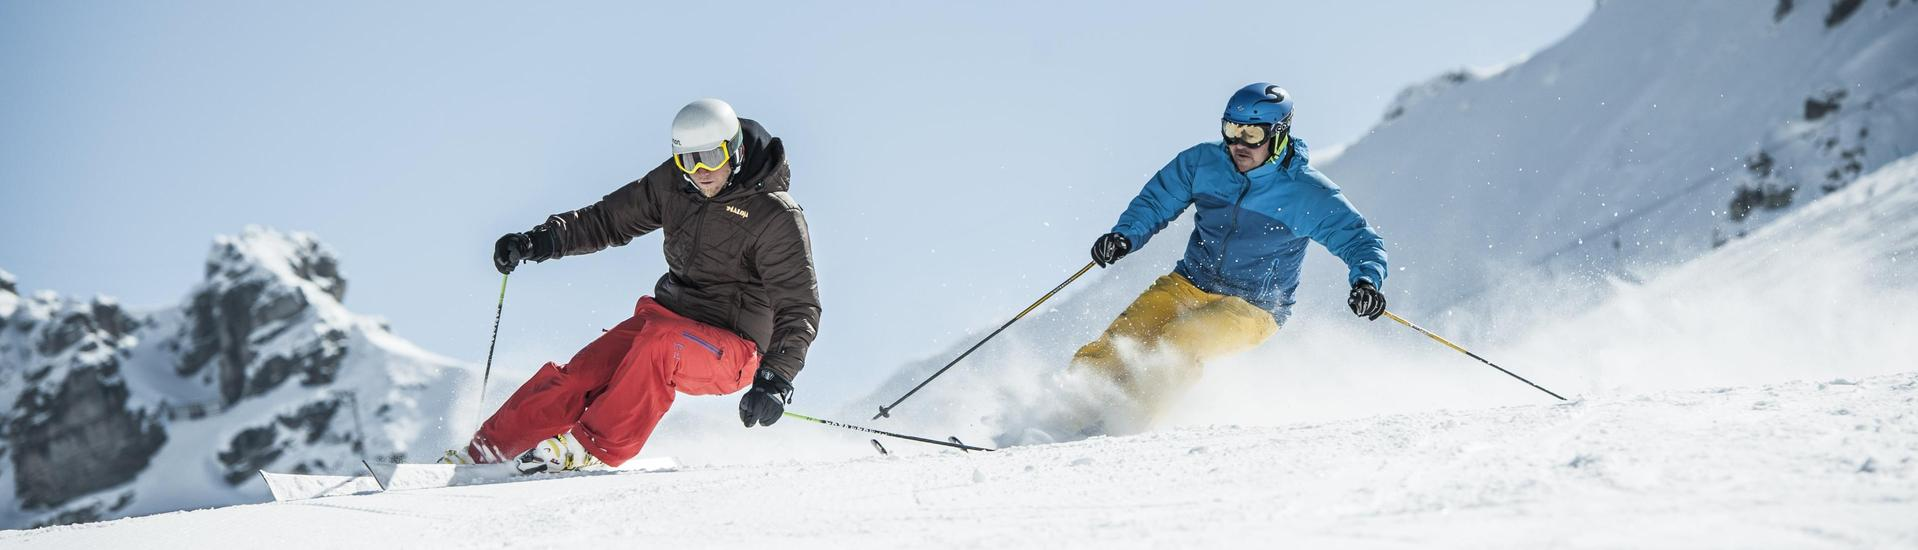 A skier practices the correct skiing technique during one of the private ski lessons in Sierra Nevada.